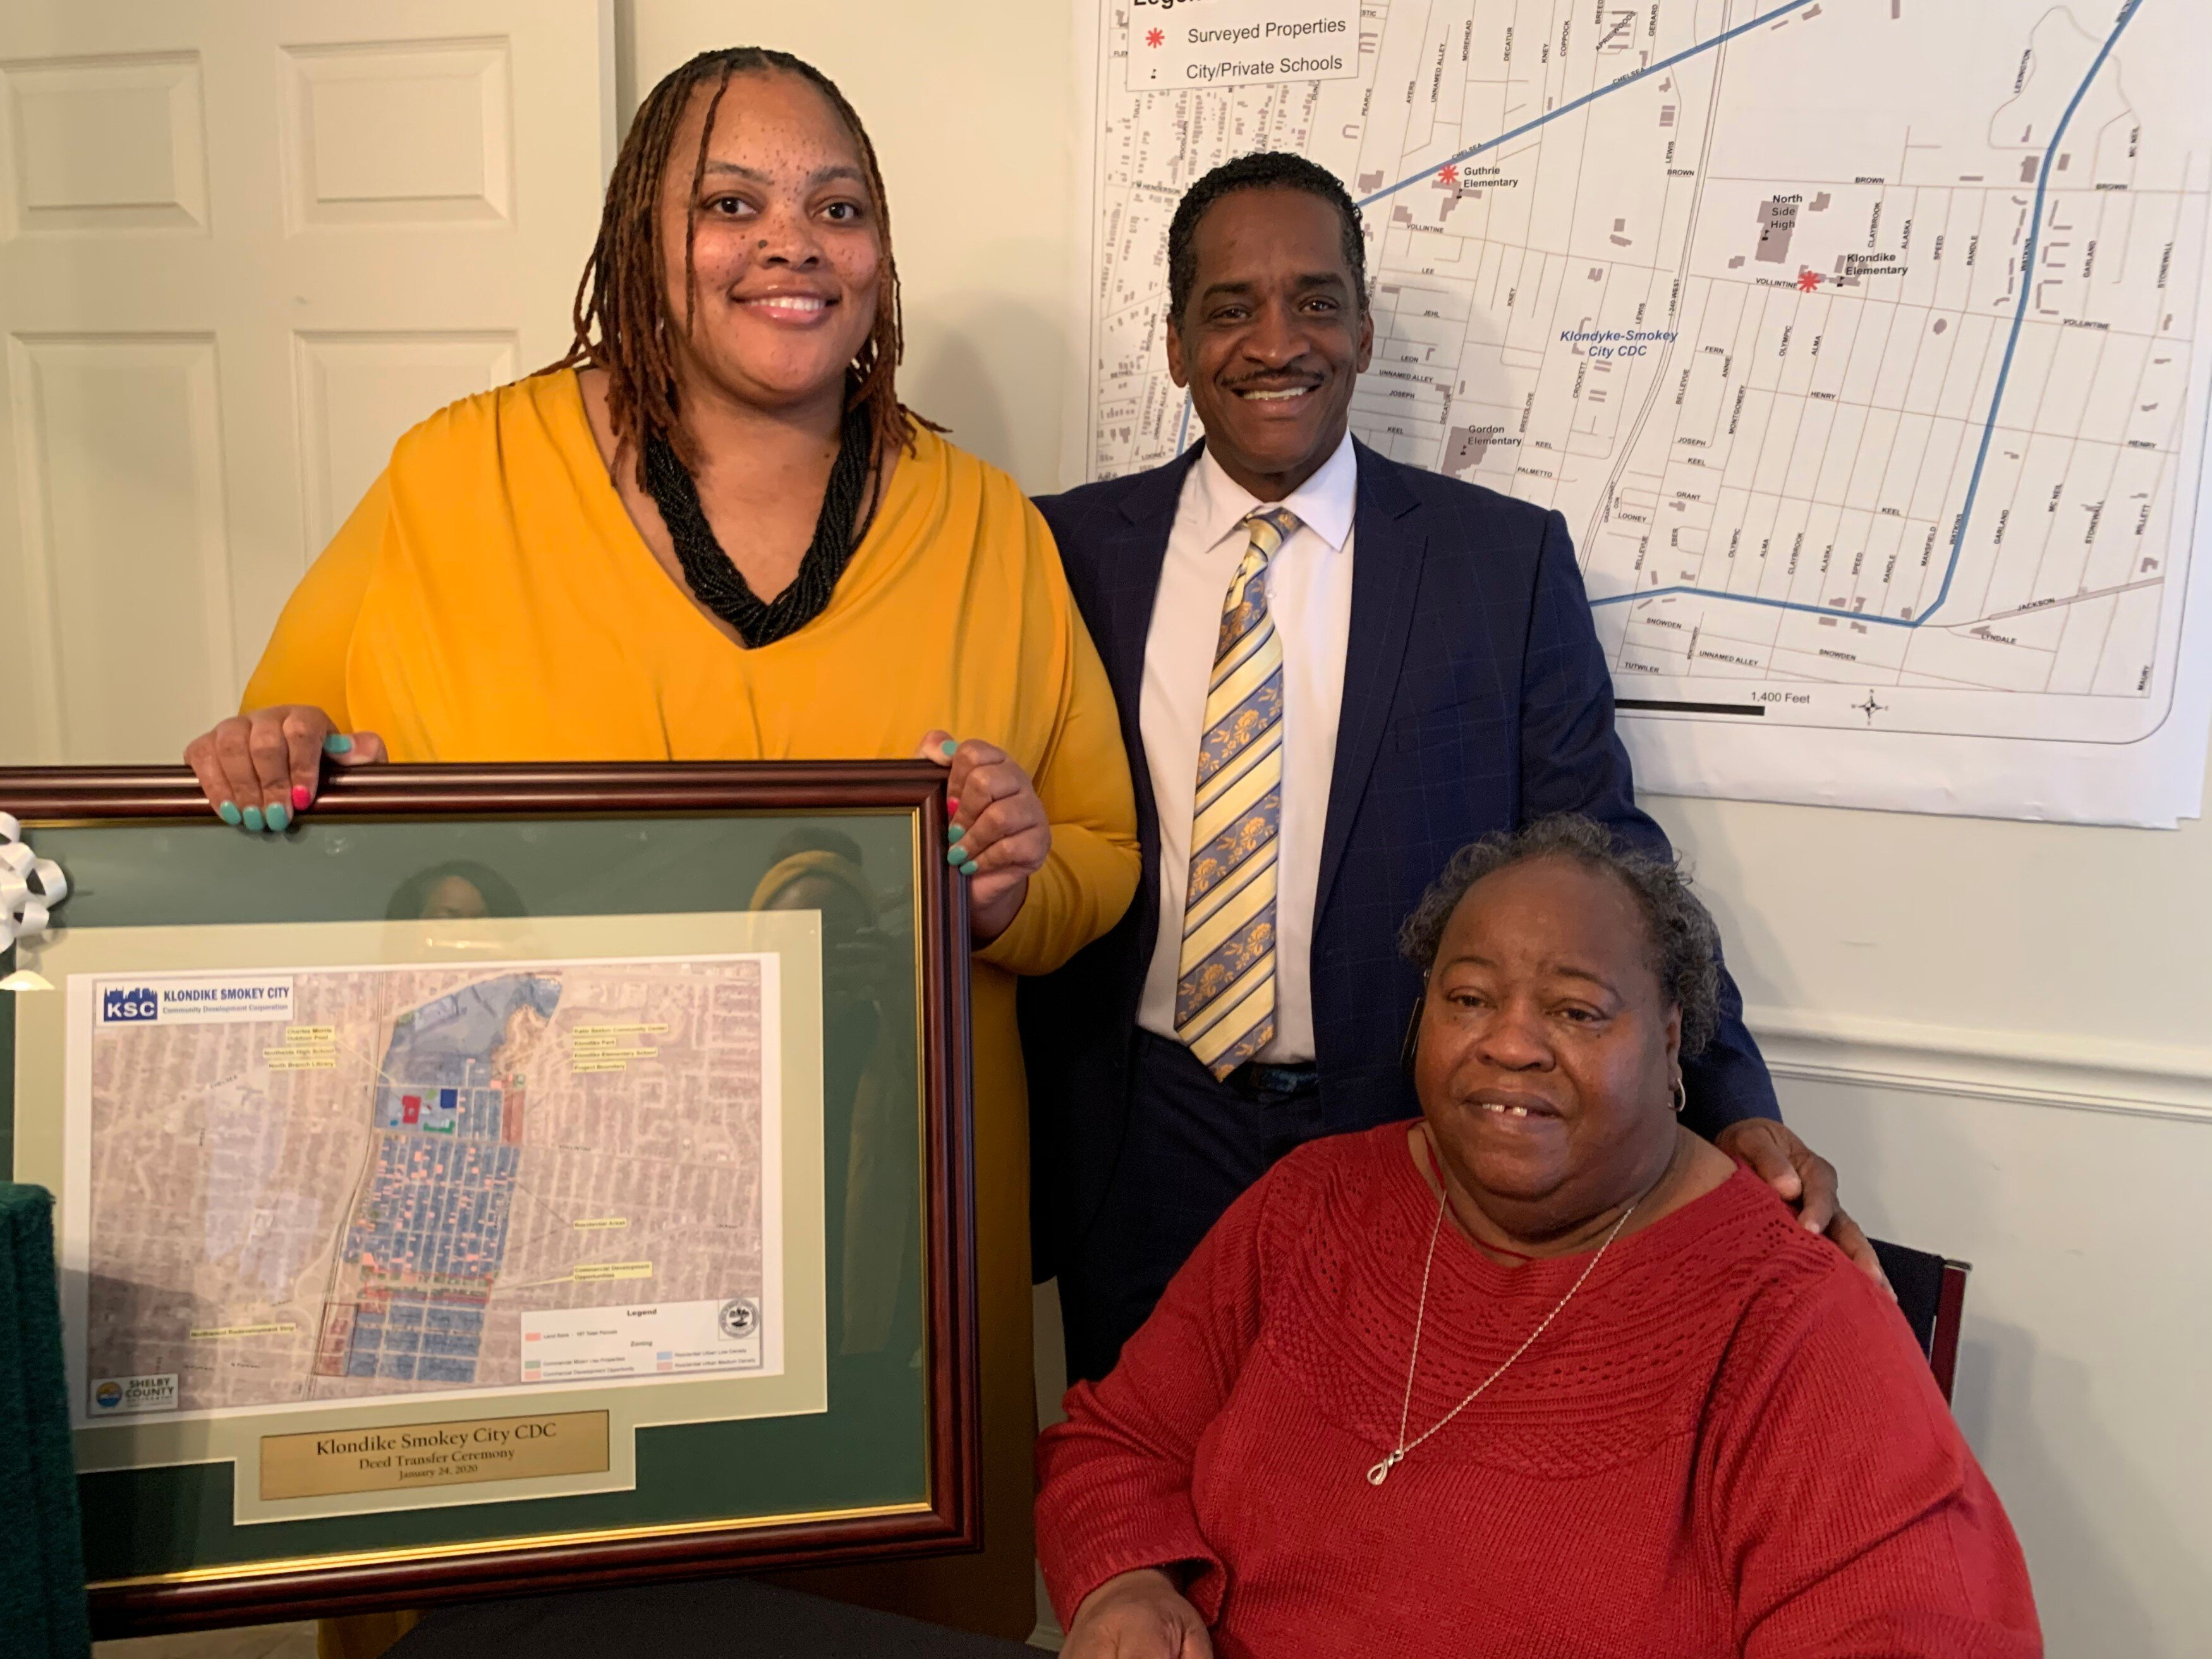 L to R: Shelby County Commissioner Tami Sawyer, Commissioner Eddie Jones, and Quincey Morris, executive director of the Klondike Smokey City CDC pose with a map of the 150 parcels transferred from the land bank to the CDC and NPI. (Ashlei Williams)